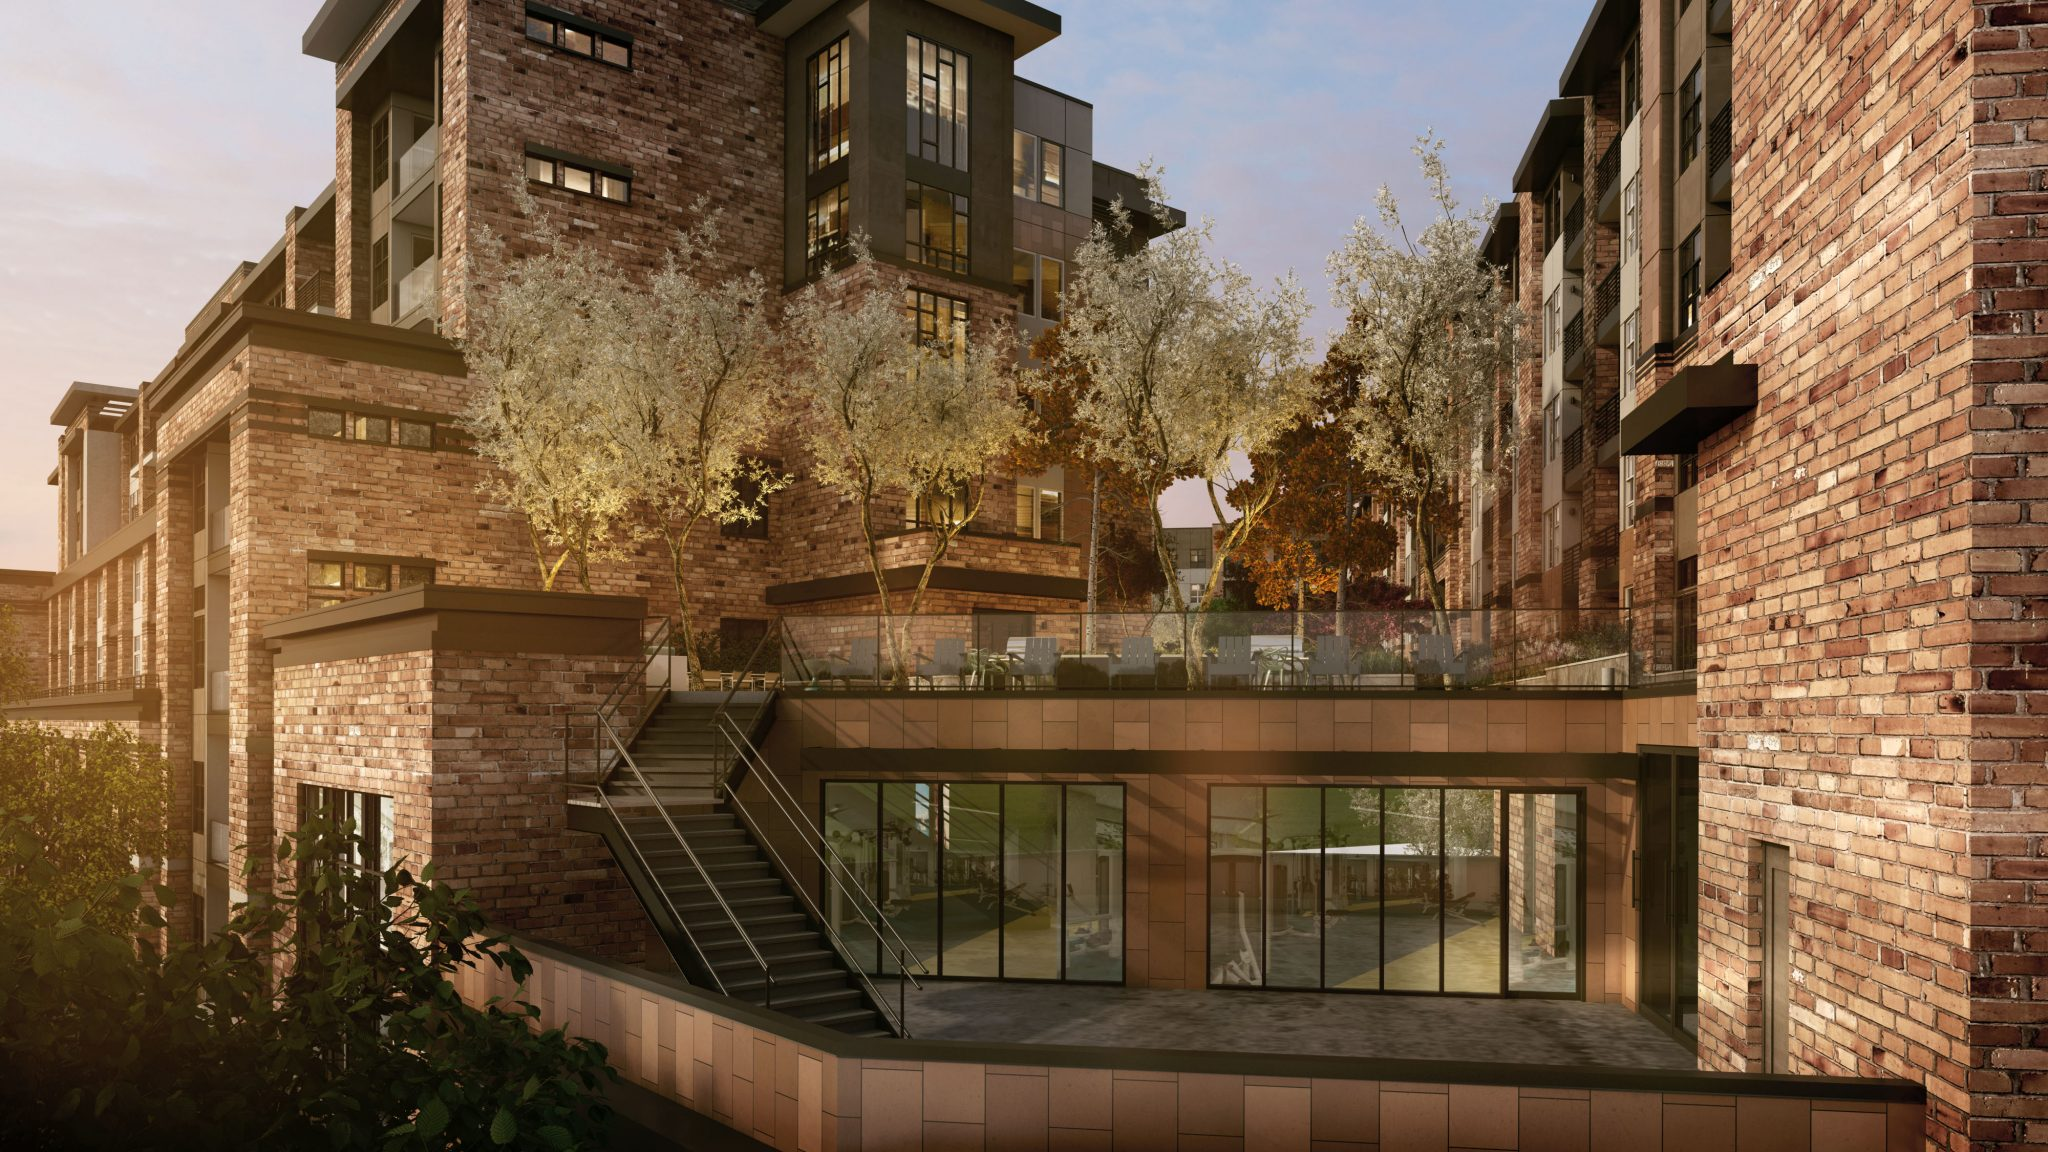 Exterior of brick apartment complex with outdoor area between multistory buildings